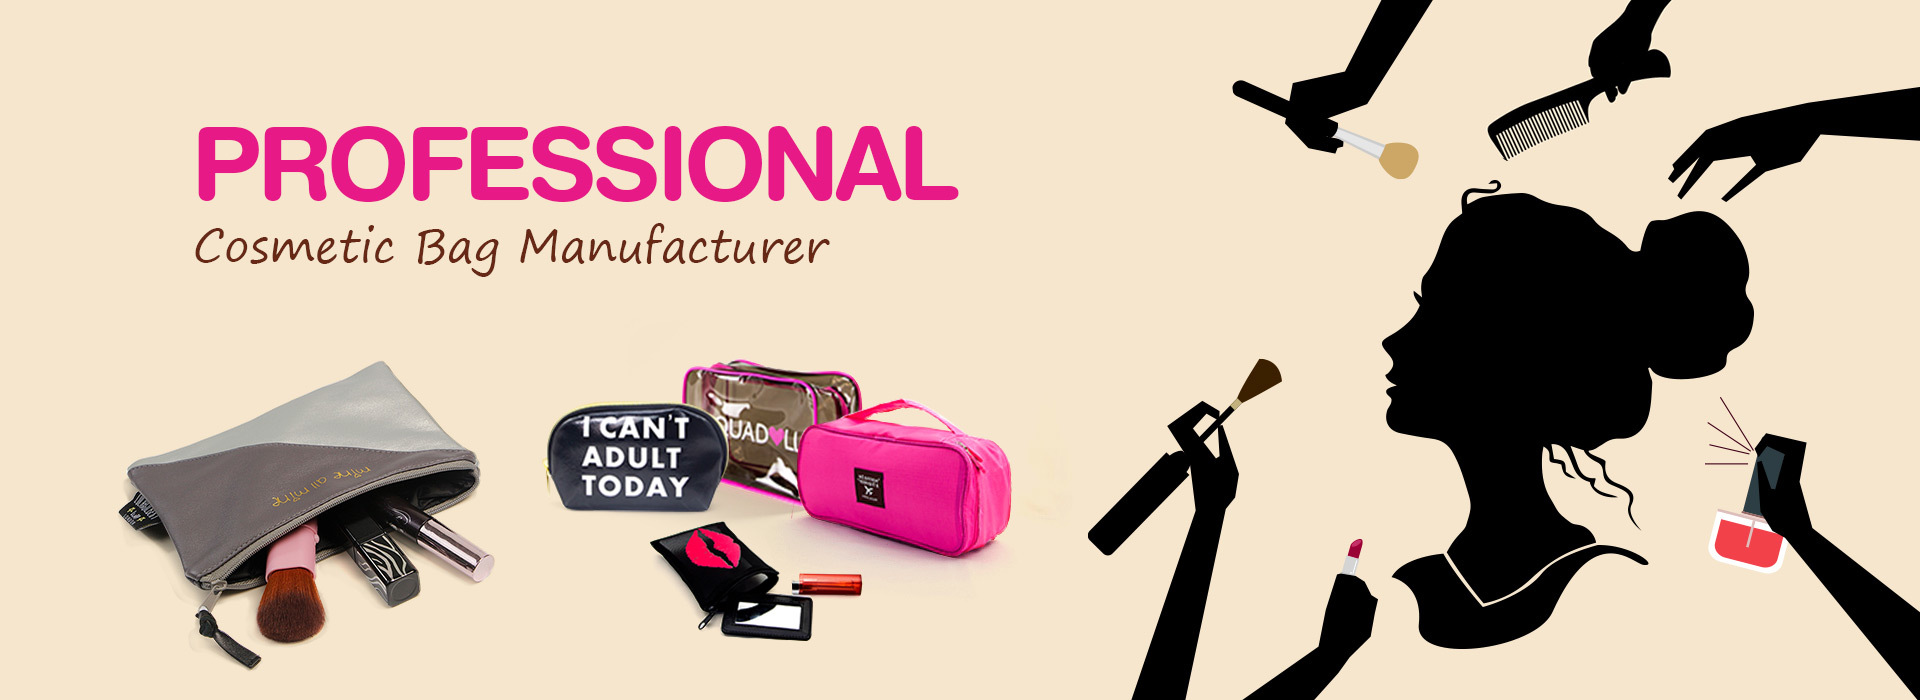 cosmetic bag manufacturer, makeup bag manufacturers, cosmetic bag suppliers